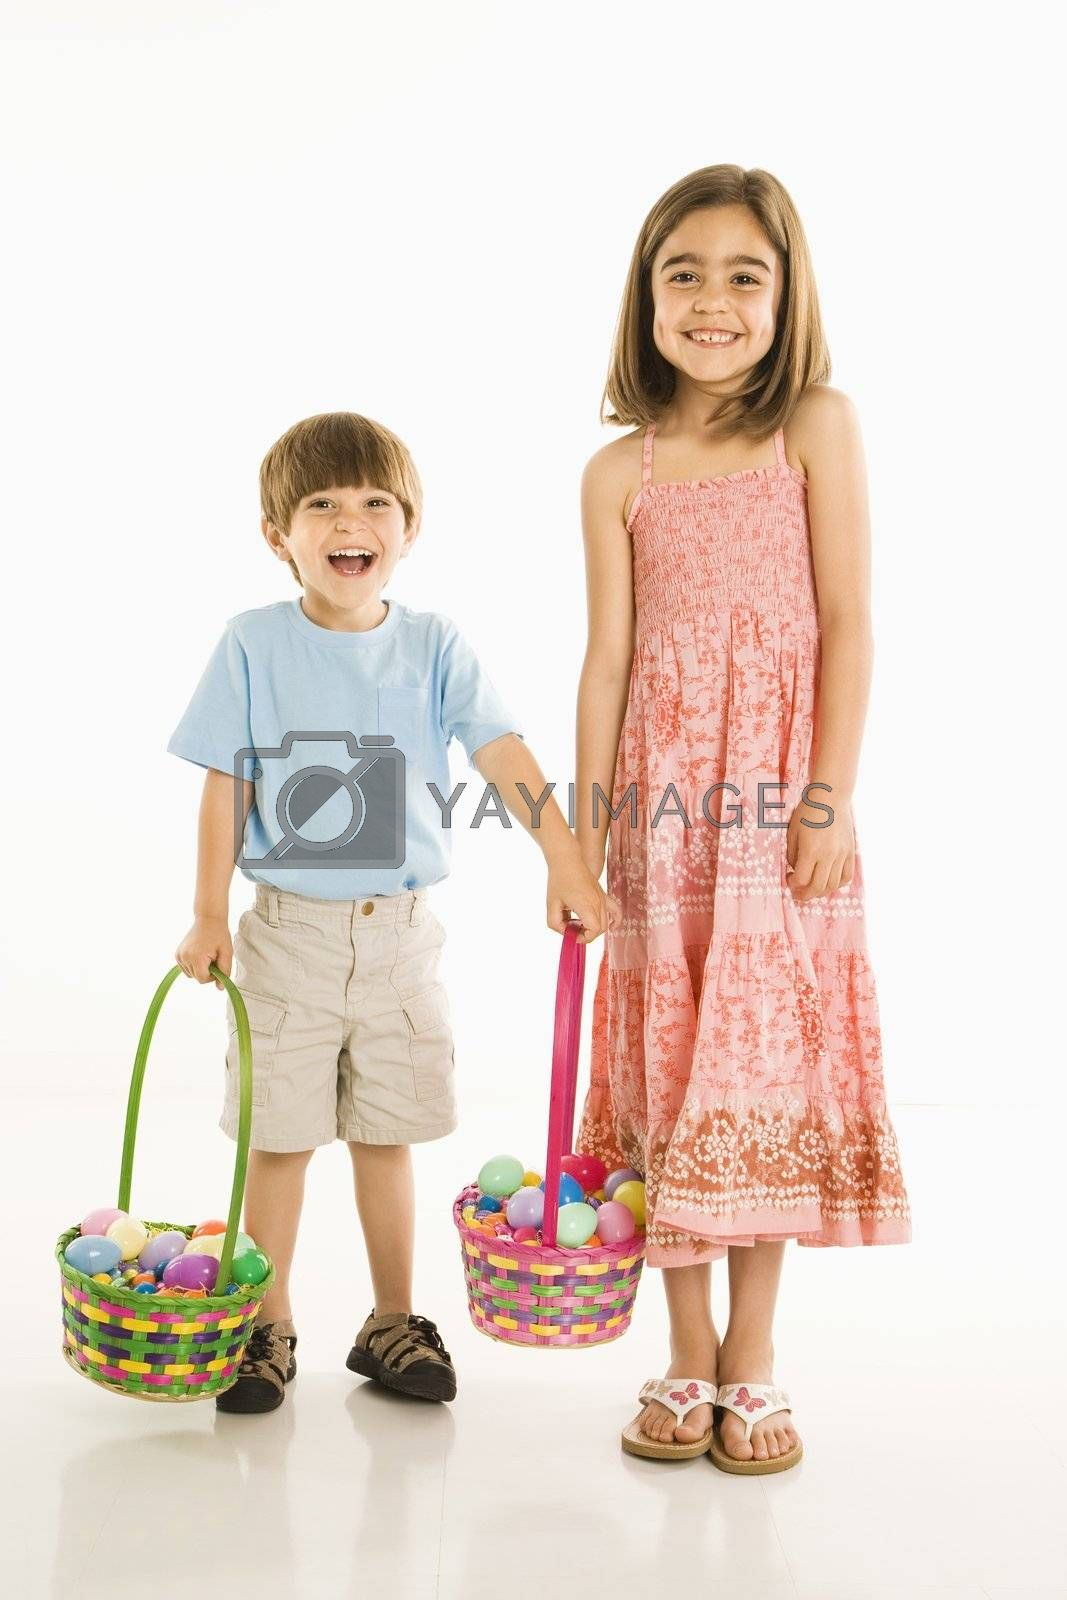 Smiling girl and boy standing with Easter baskets against white background.